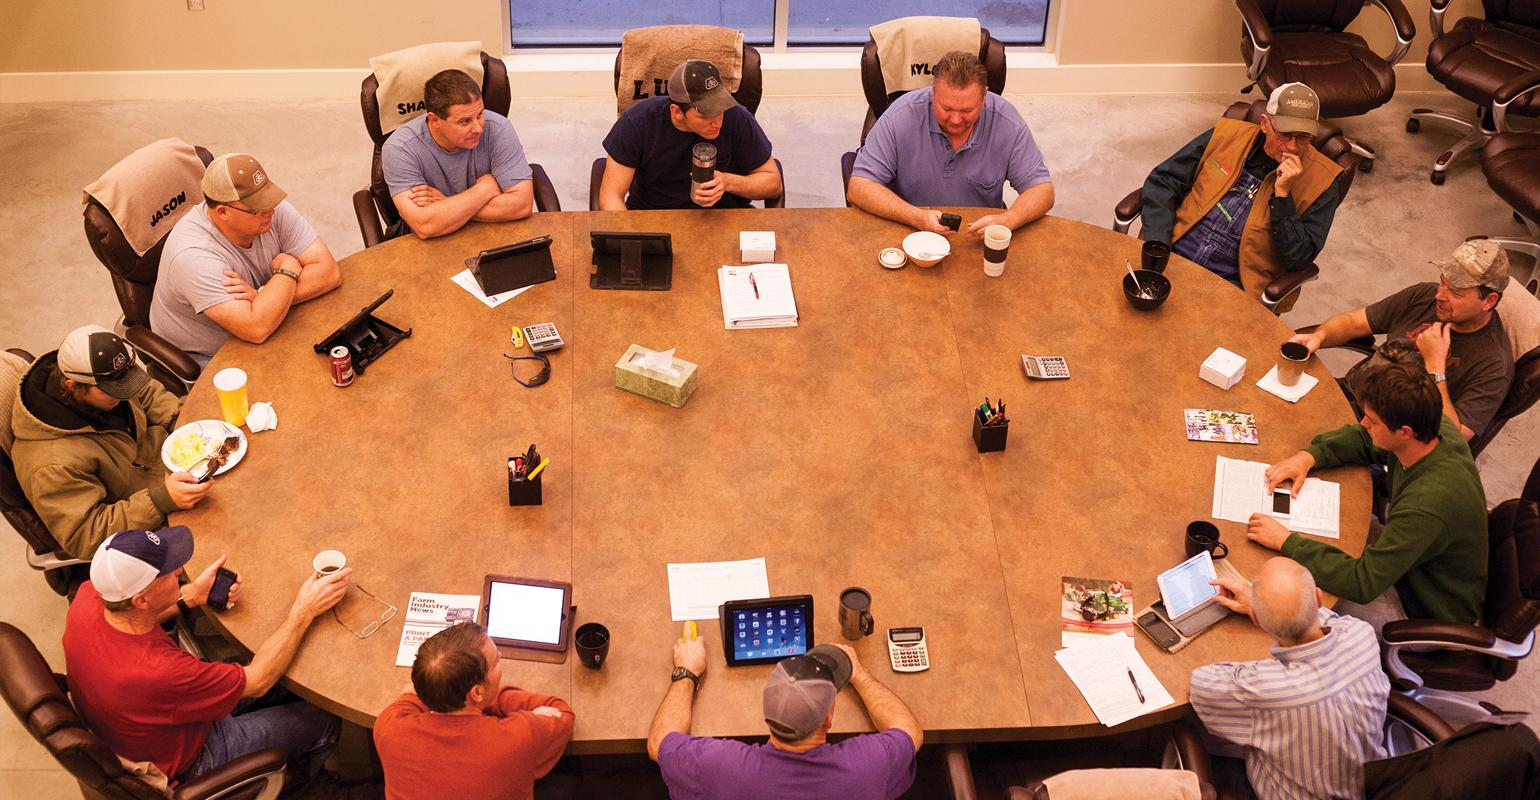 Group of guys meeting around large conference table